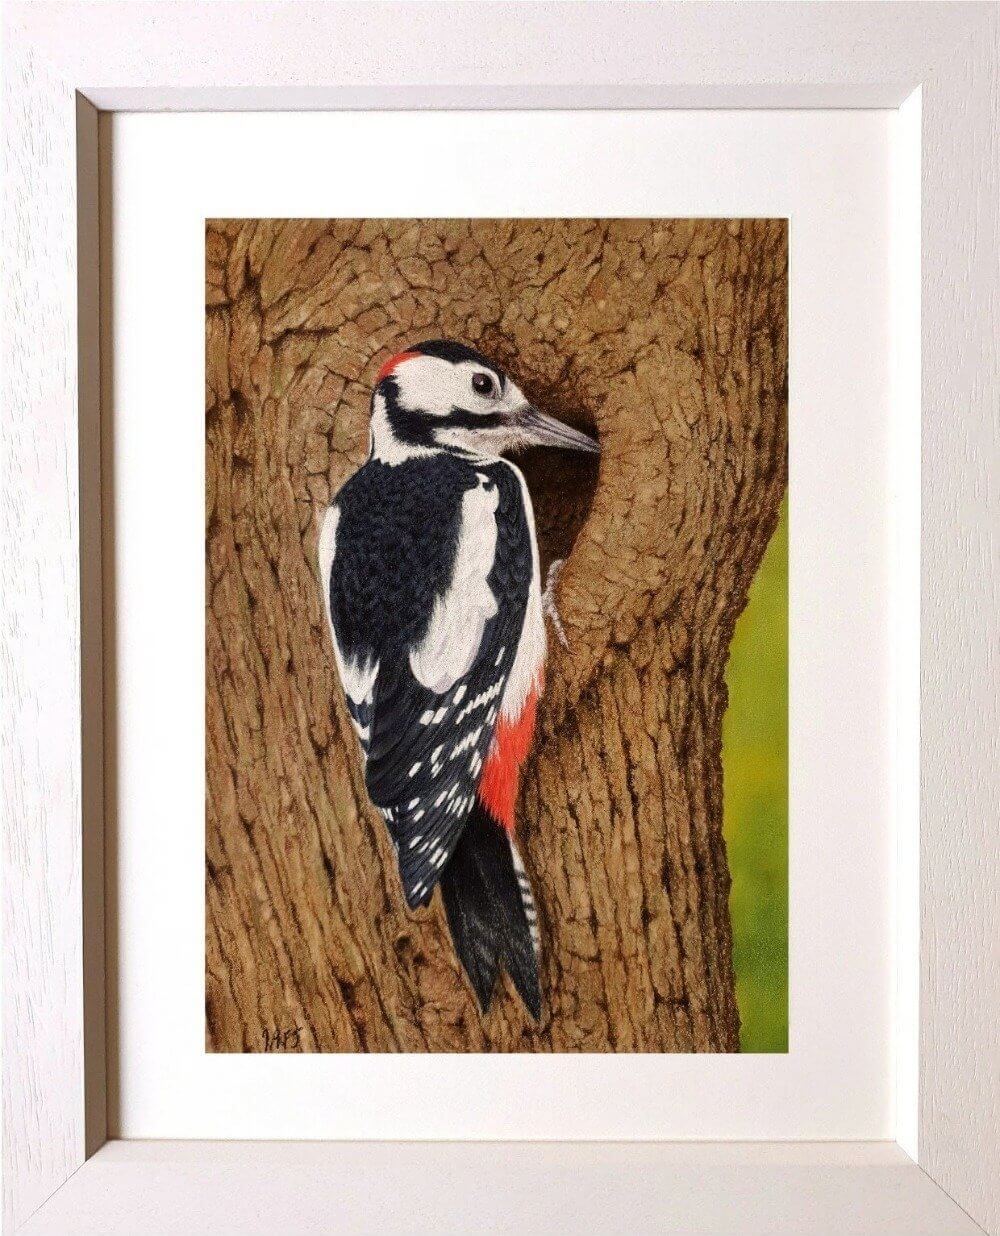 High-rise accommodation - great spotted woodpecker in frame Ivan Jones Pastel Artist